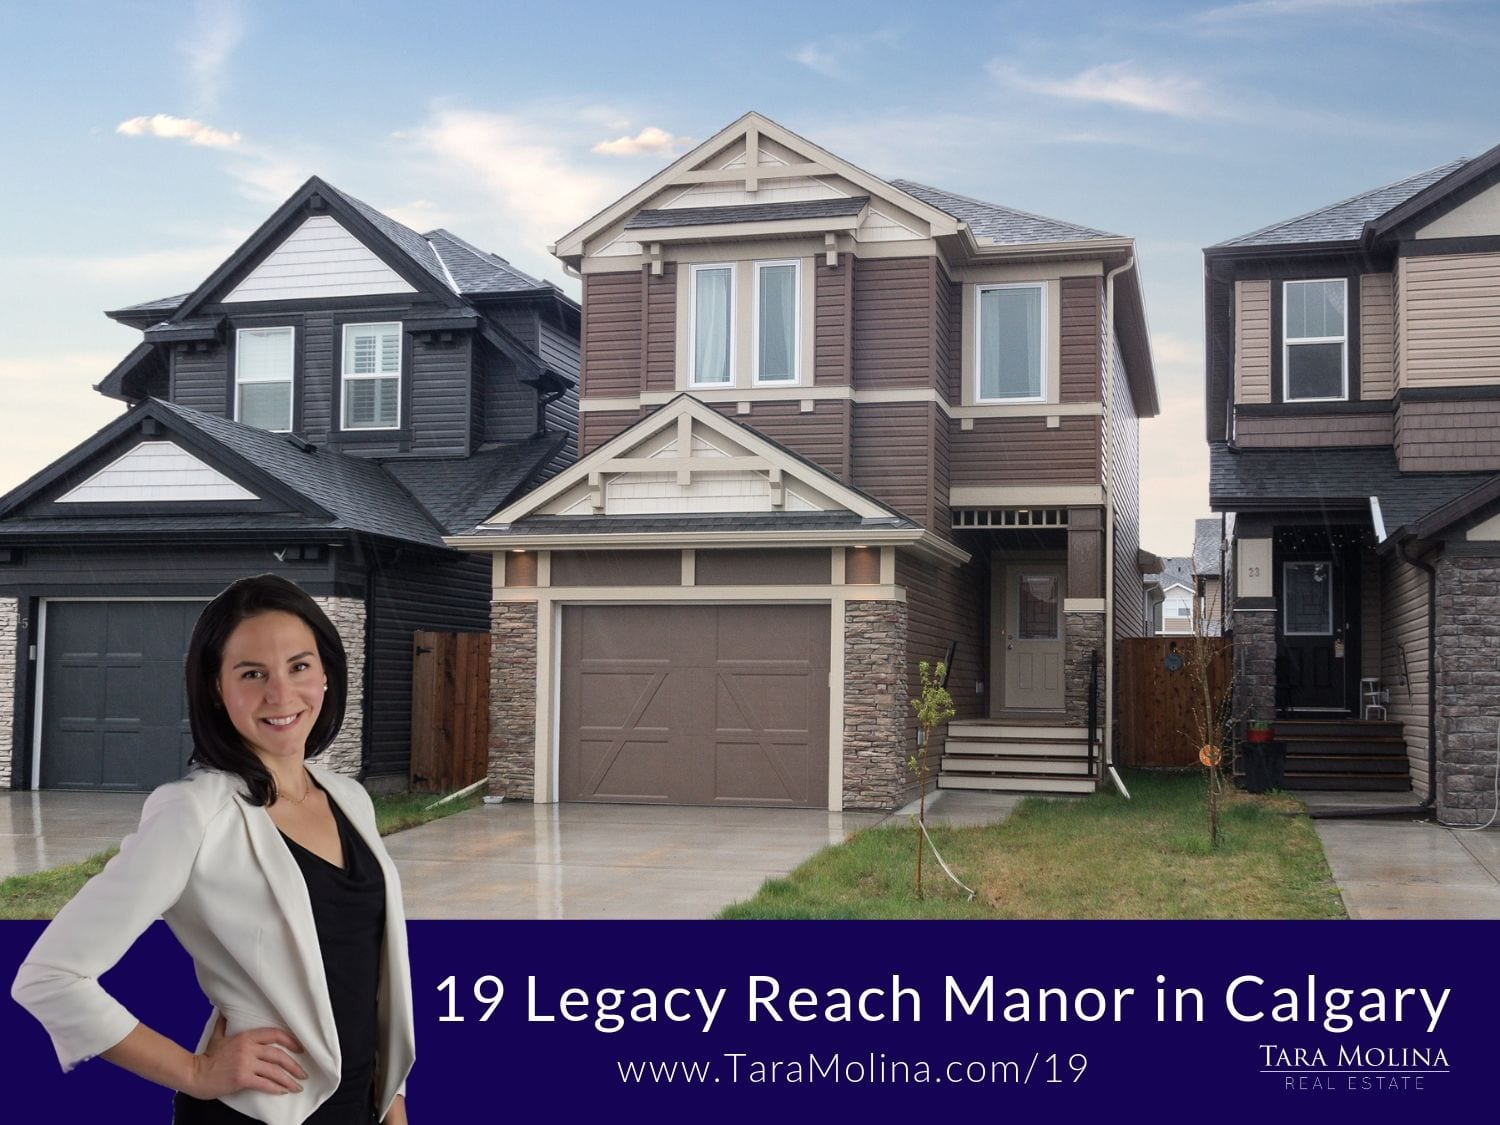 19 Legacy Reach Manor in Calgary